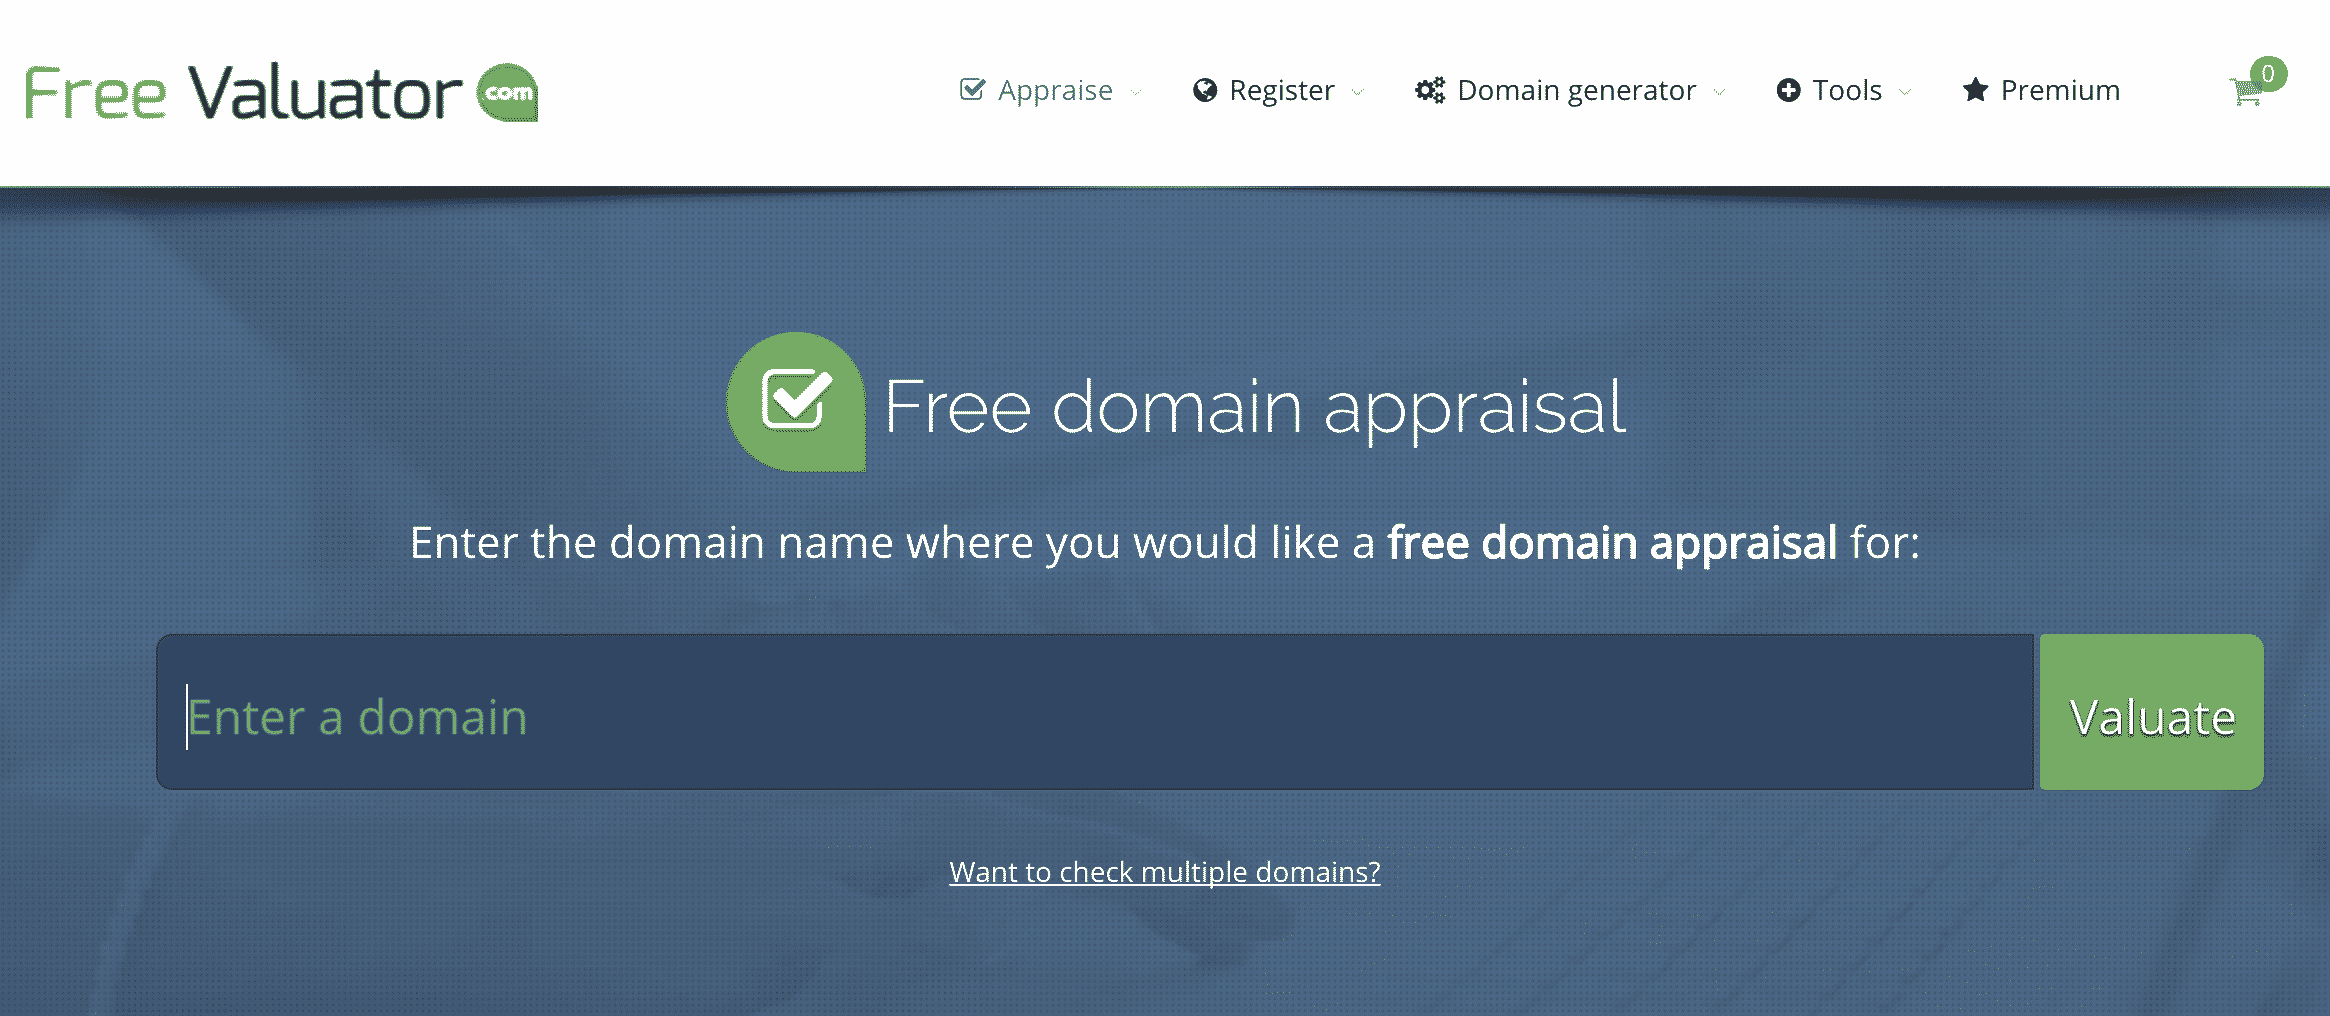 Free Valuator - Domain Name Valuation Tool